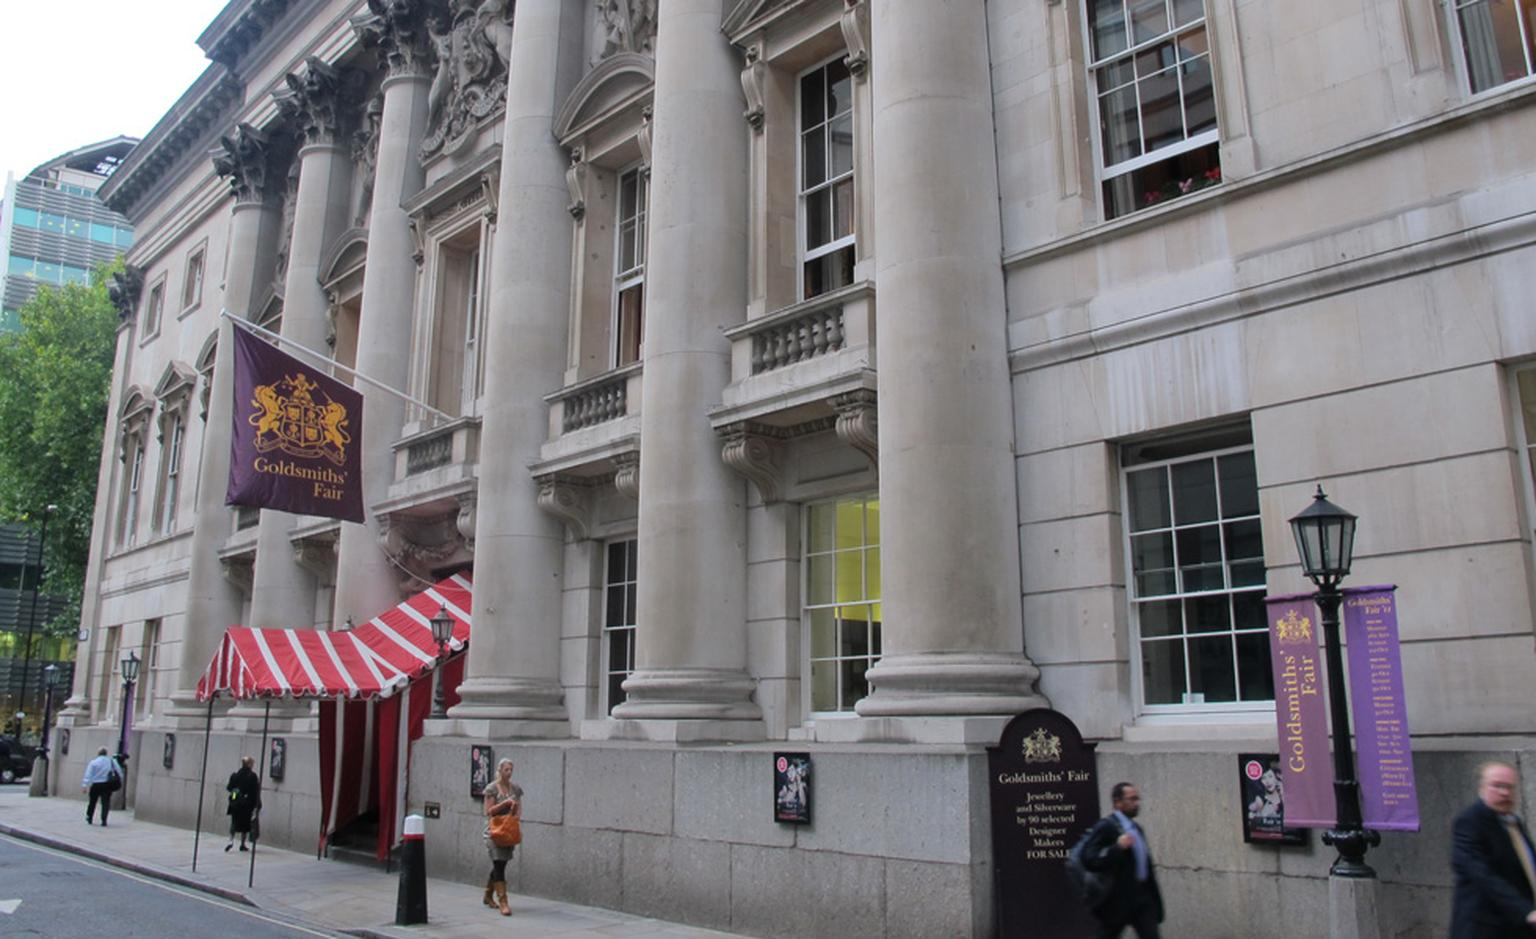 Entrance to Goldsmiths' Fair, the annual selling exhibition of UK independent jewellers and silversmiths.